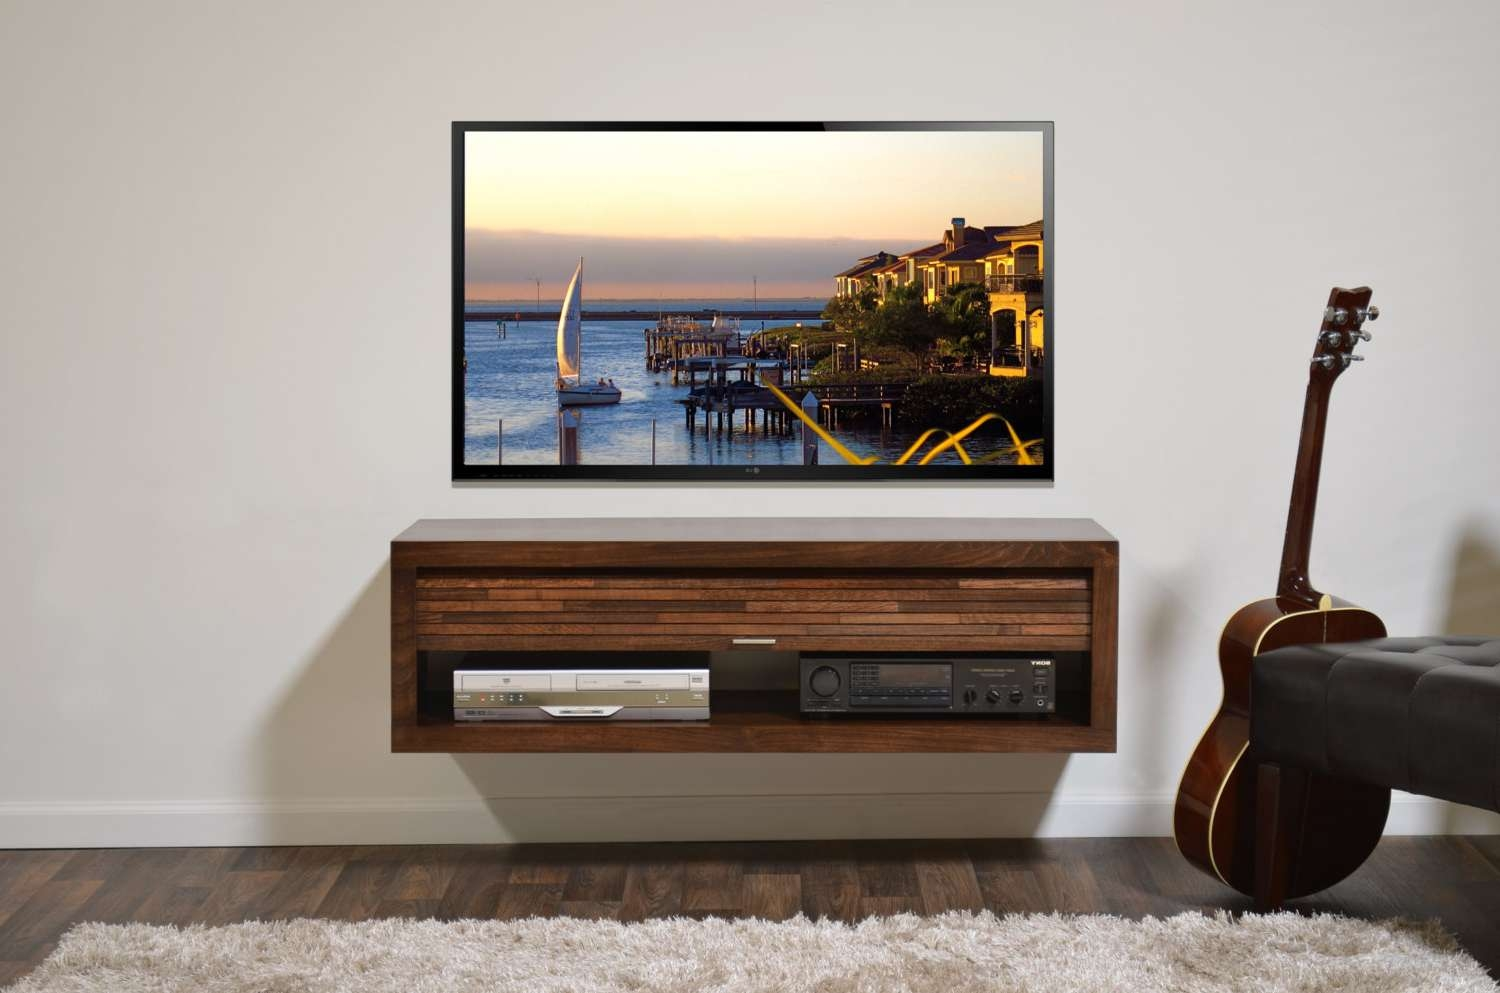 Impeccable Lack Tv Hack Lack Tv Hack Ikea Hackers Ikea Hackers To Inside Floating Tv Cabinets (View 12 of 20)